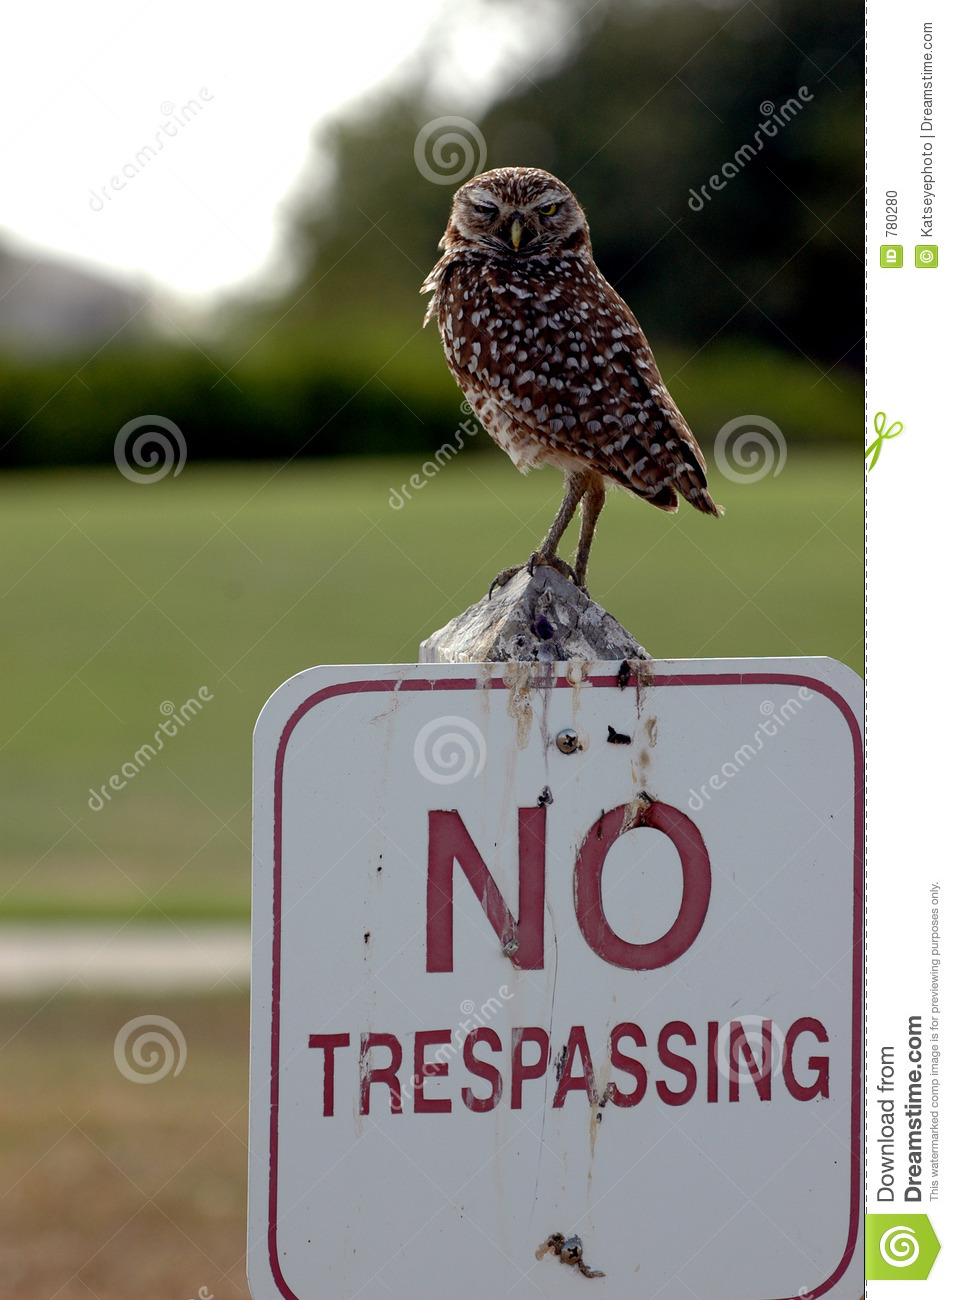 Who s trespassing?